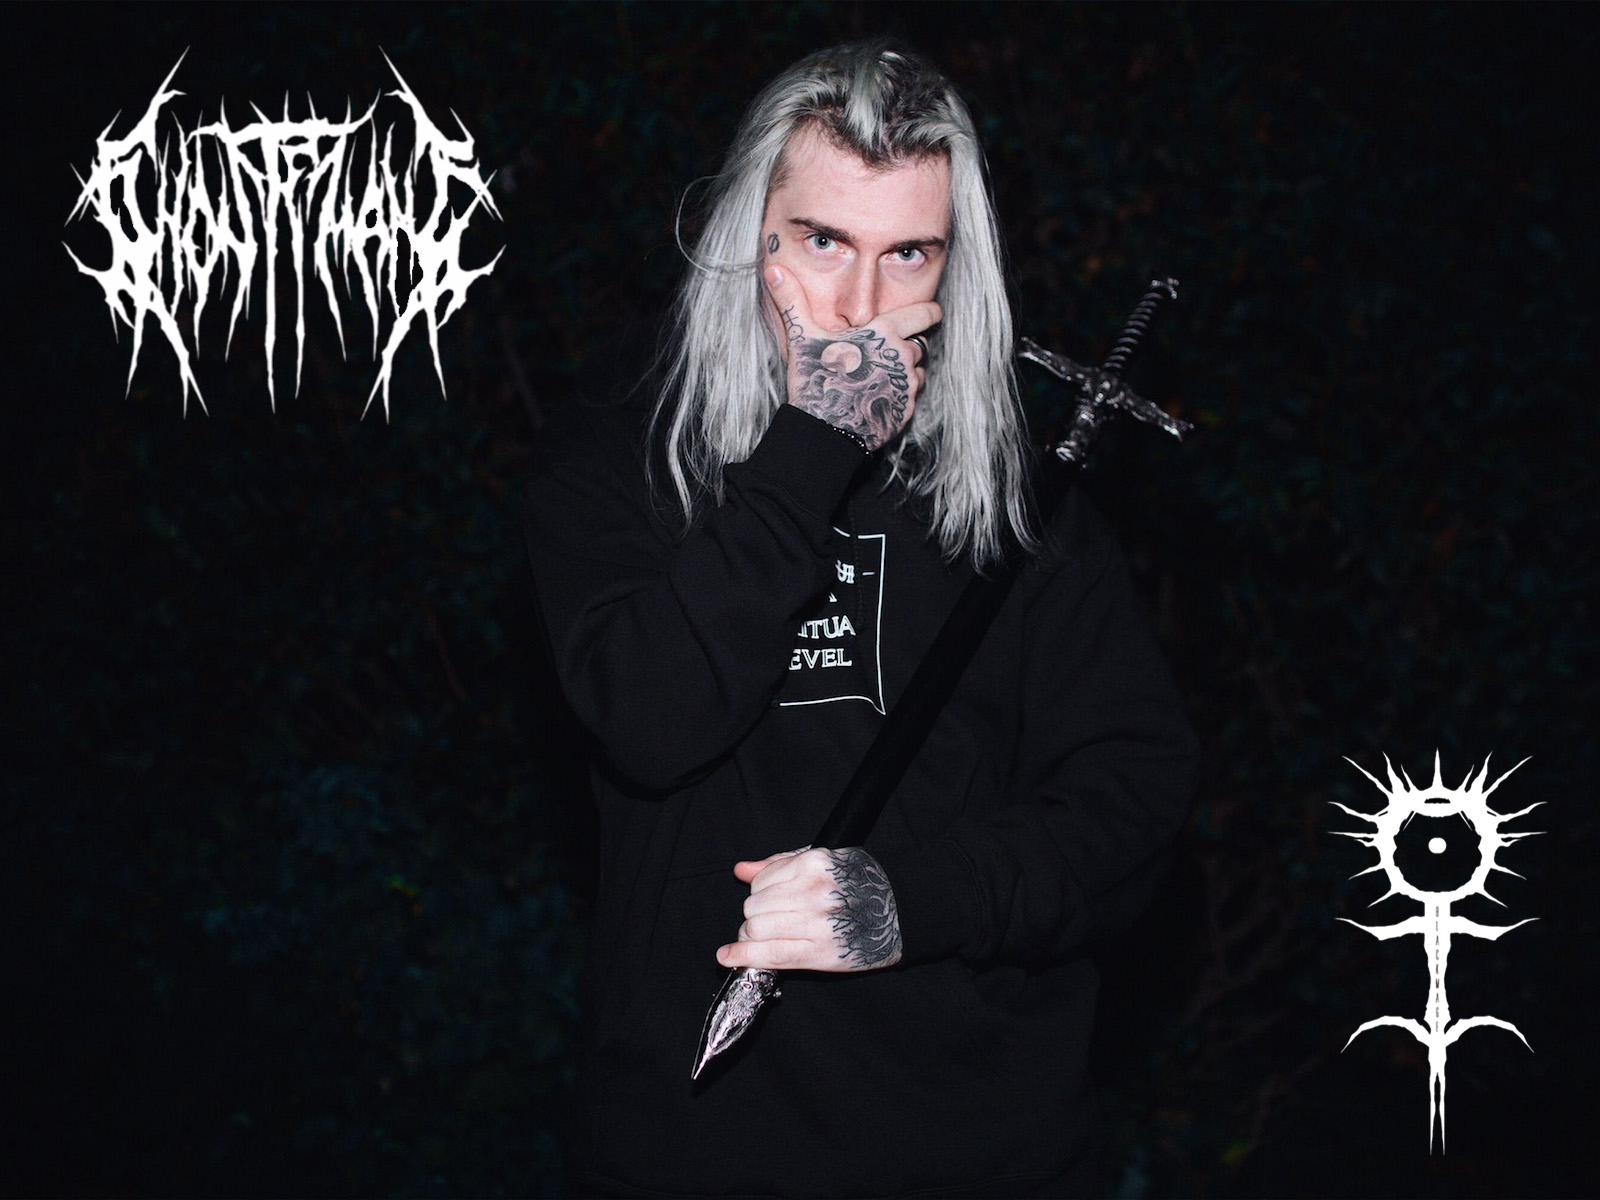 GHOSTEMANE – Metal/Industrial/Rap/Trap